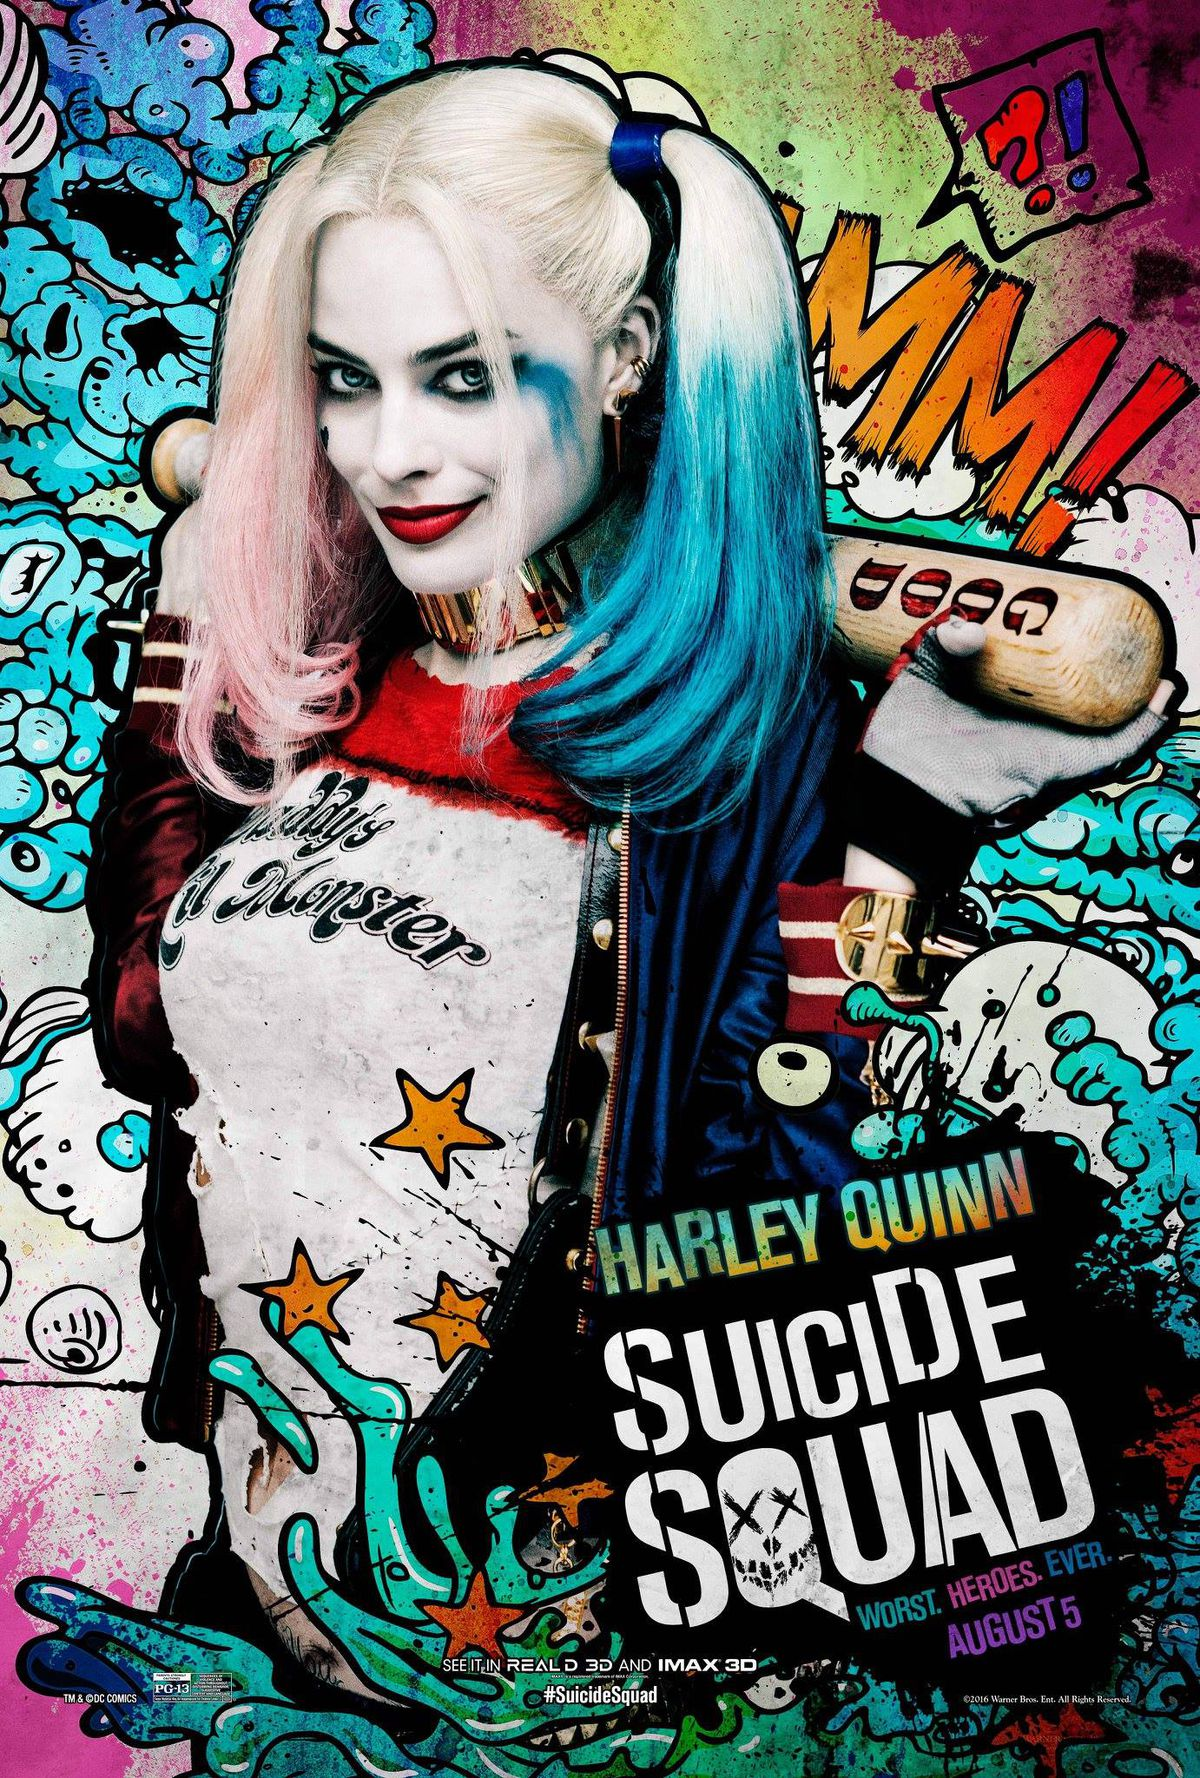 Harley Quinn's Suicide Squad character poster